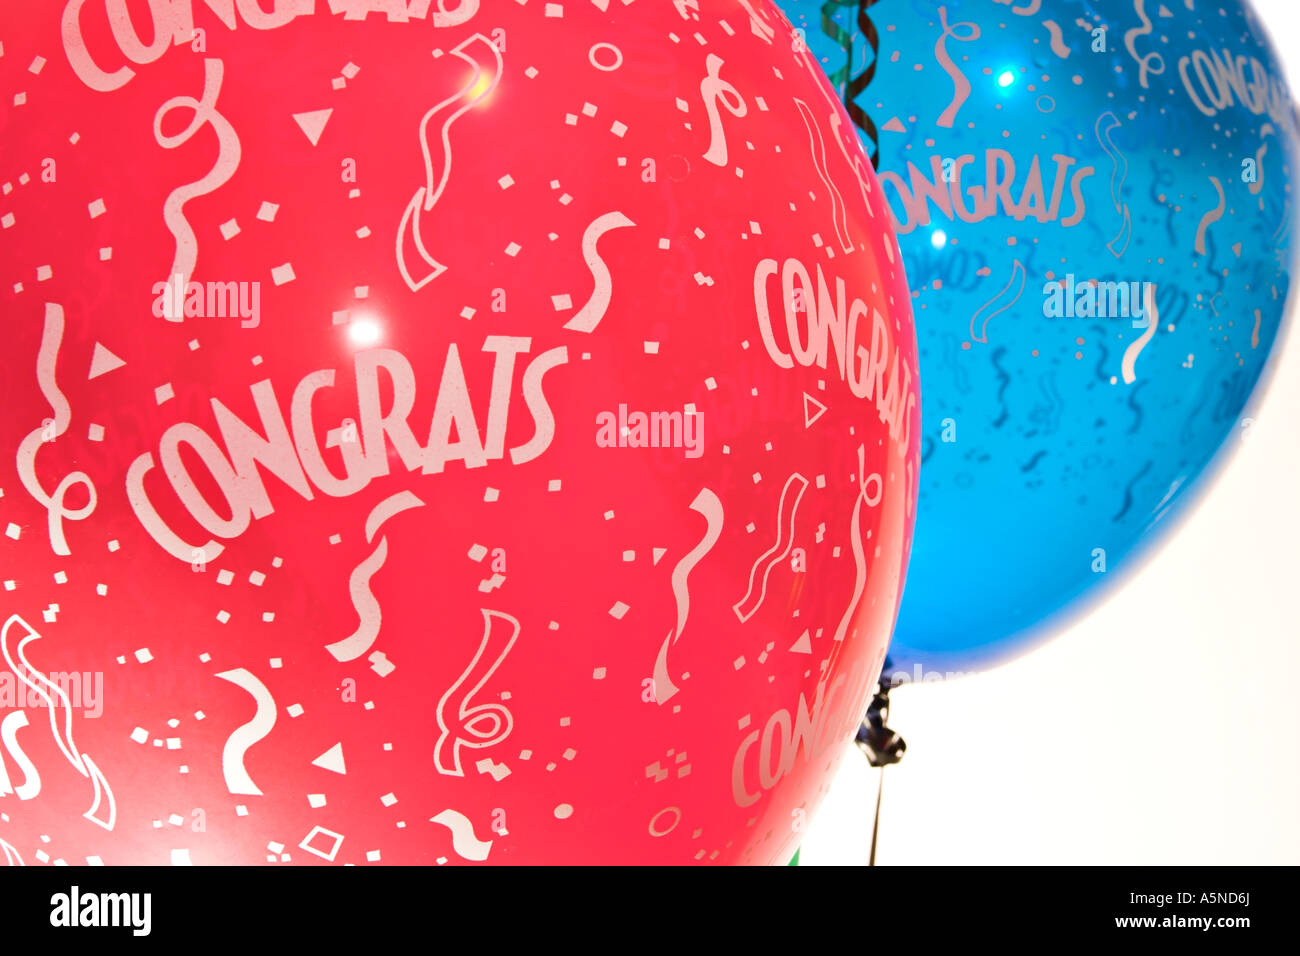 Party Time congratulations Blue and red balloons with streamers and CONGRATS written on them cutout - Stock Image